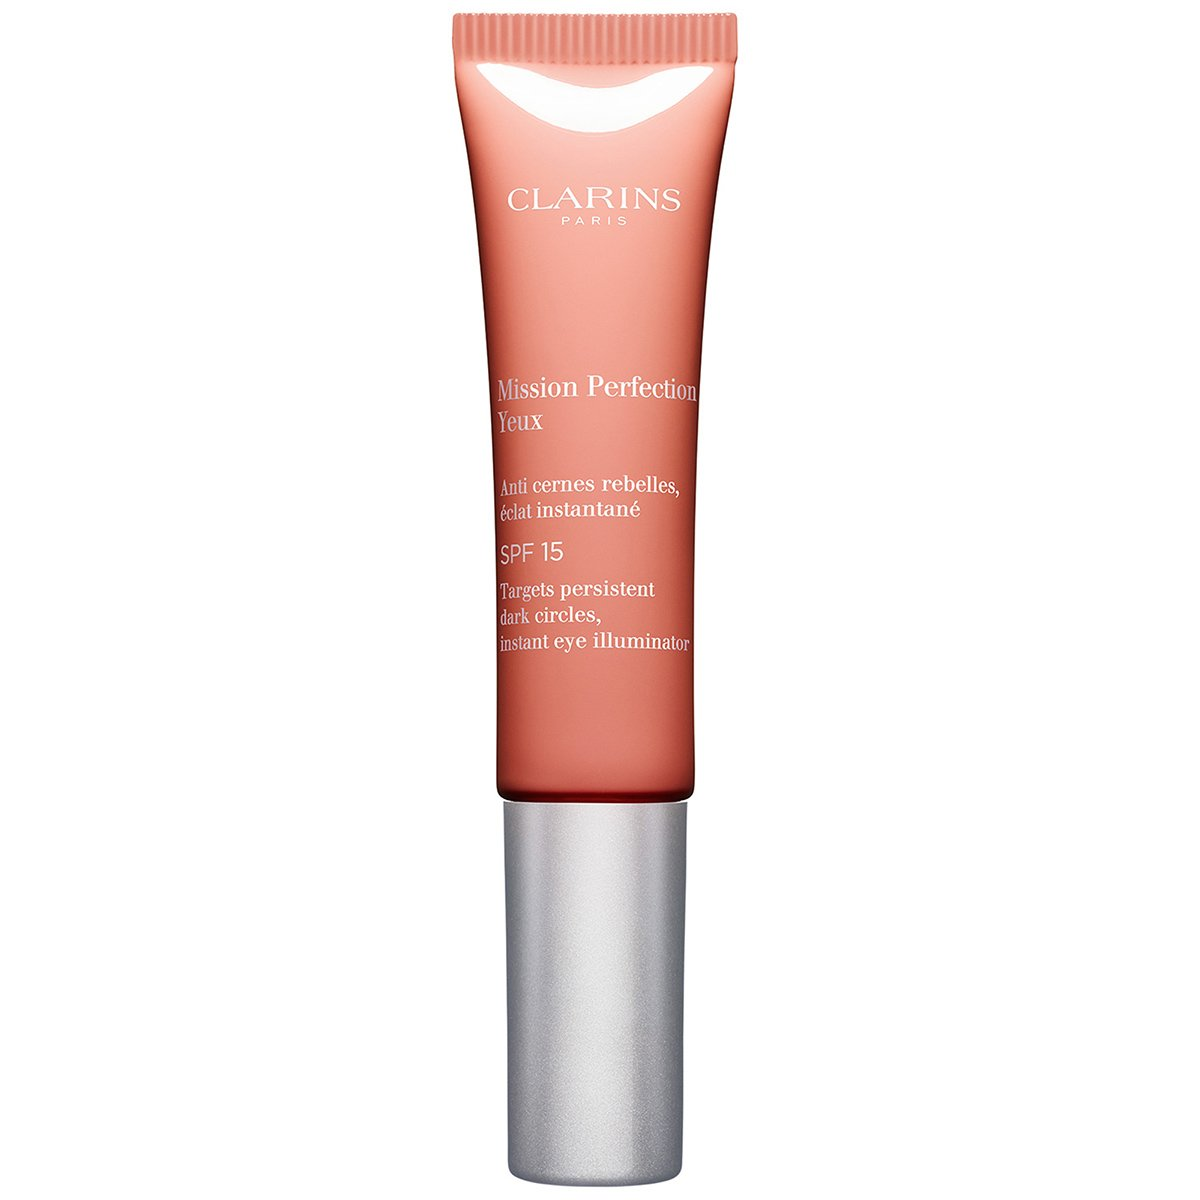 Clarins - Mission Perfection - Yeux SPF15 15 ml